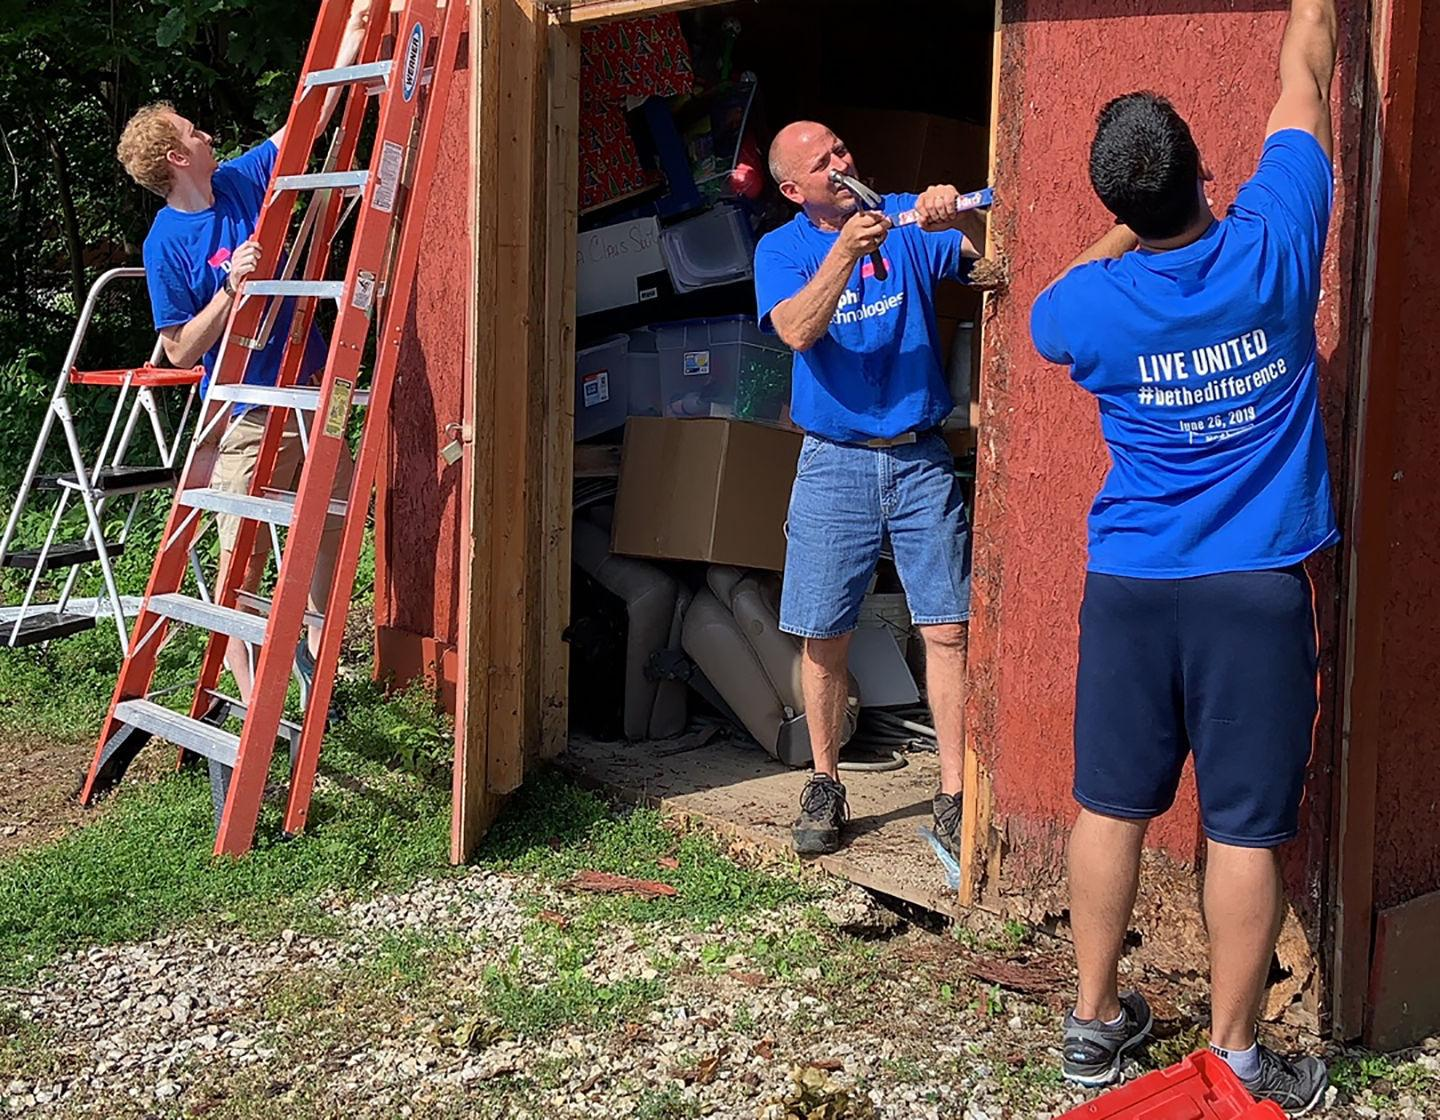 Delphi employees help spruce up nonprofits